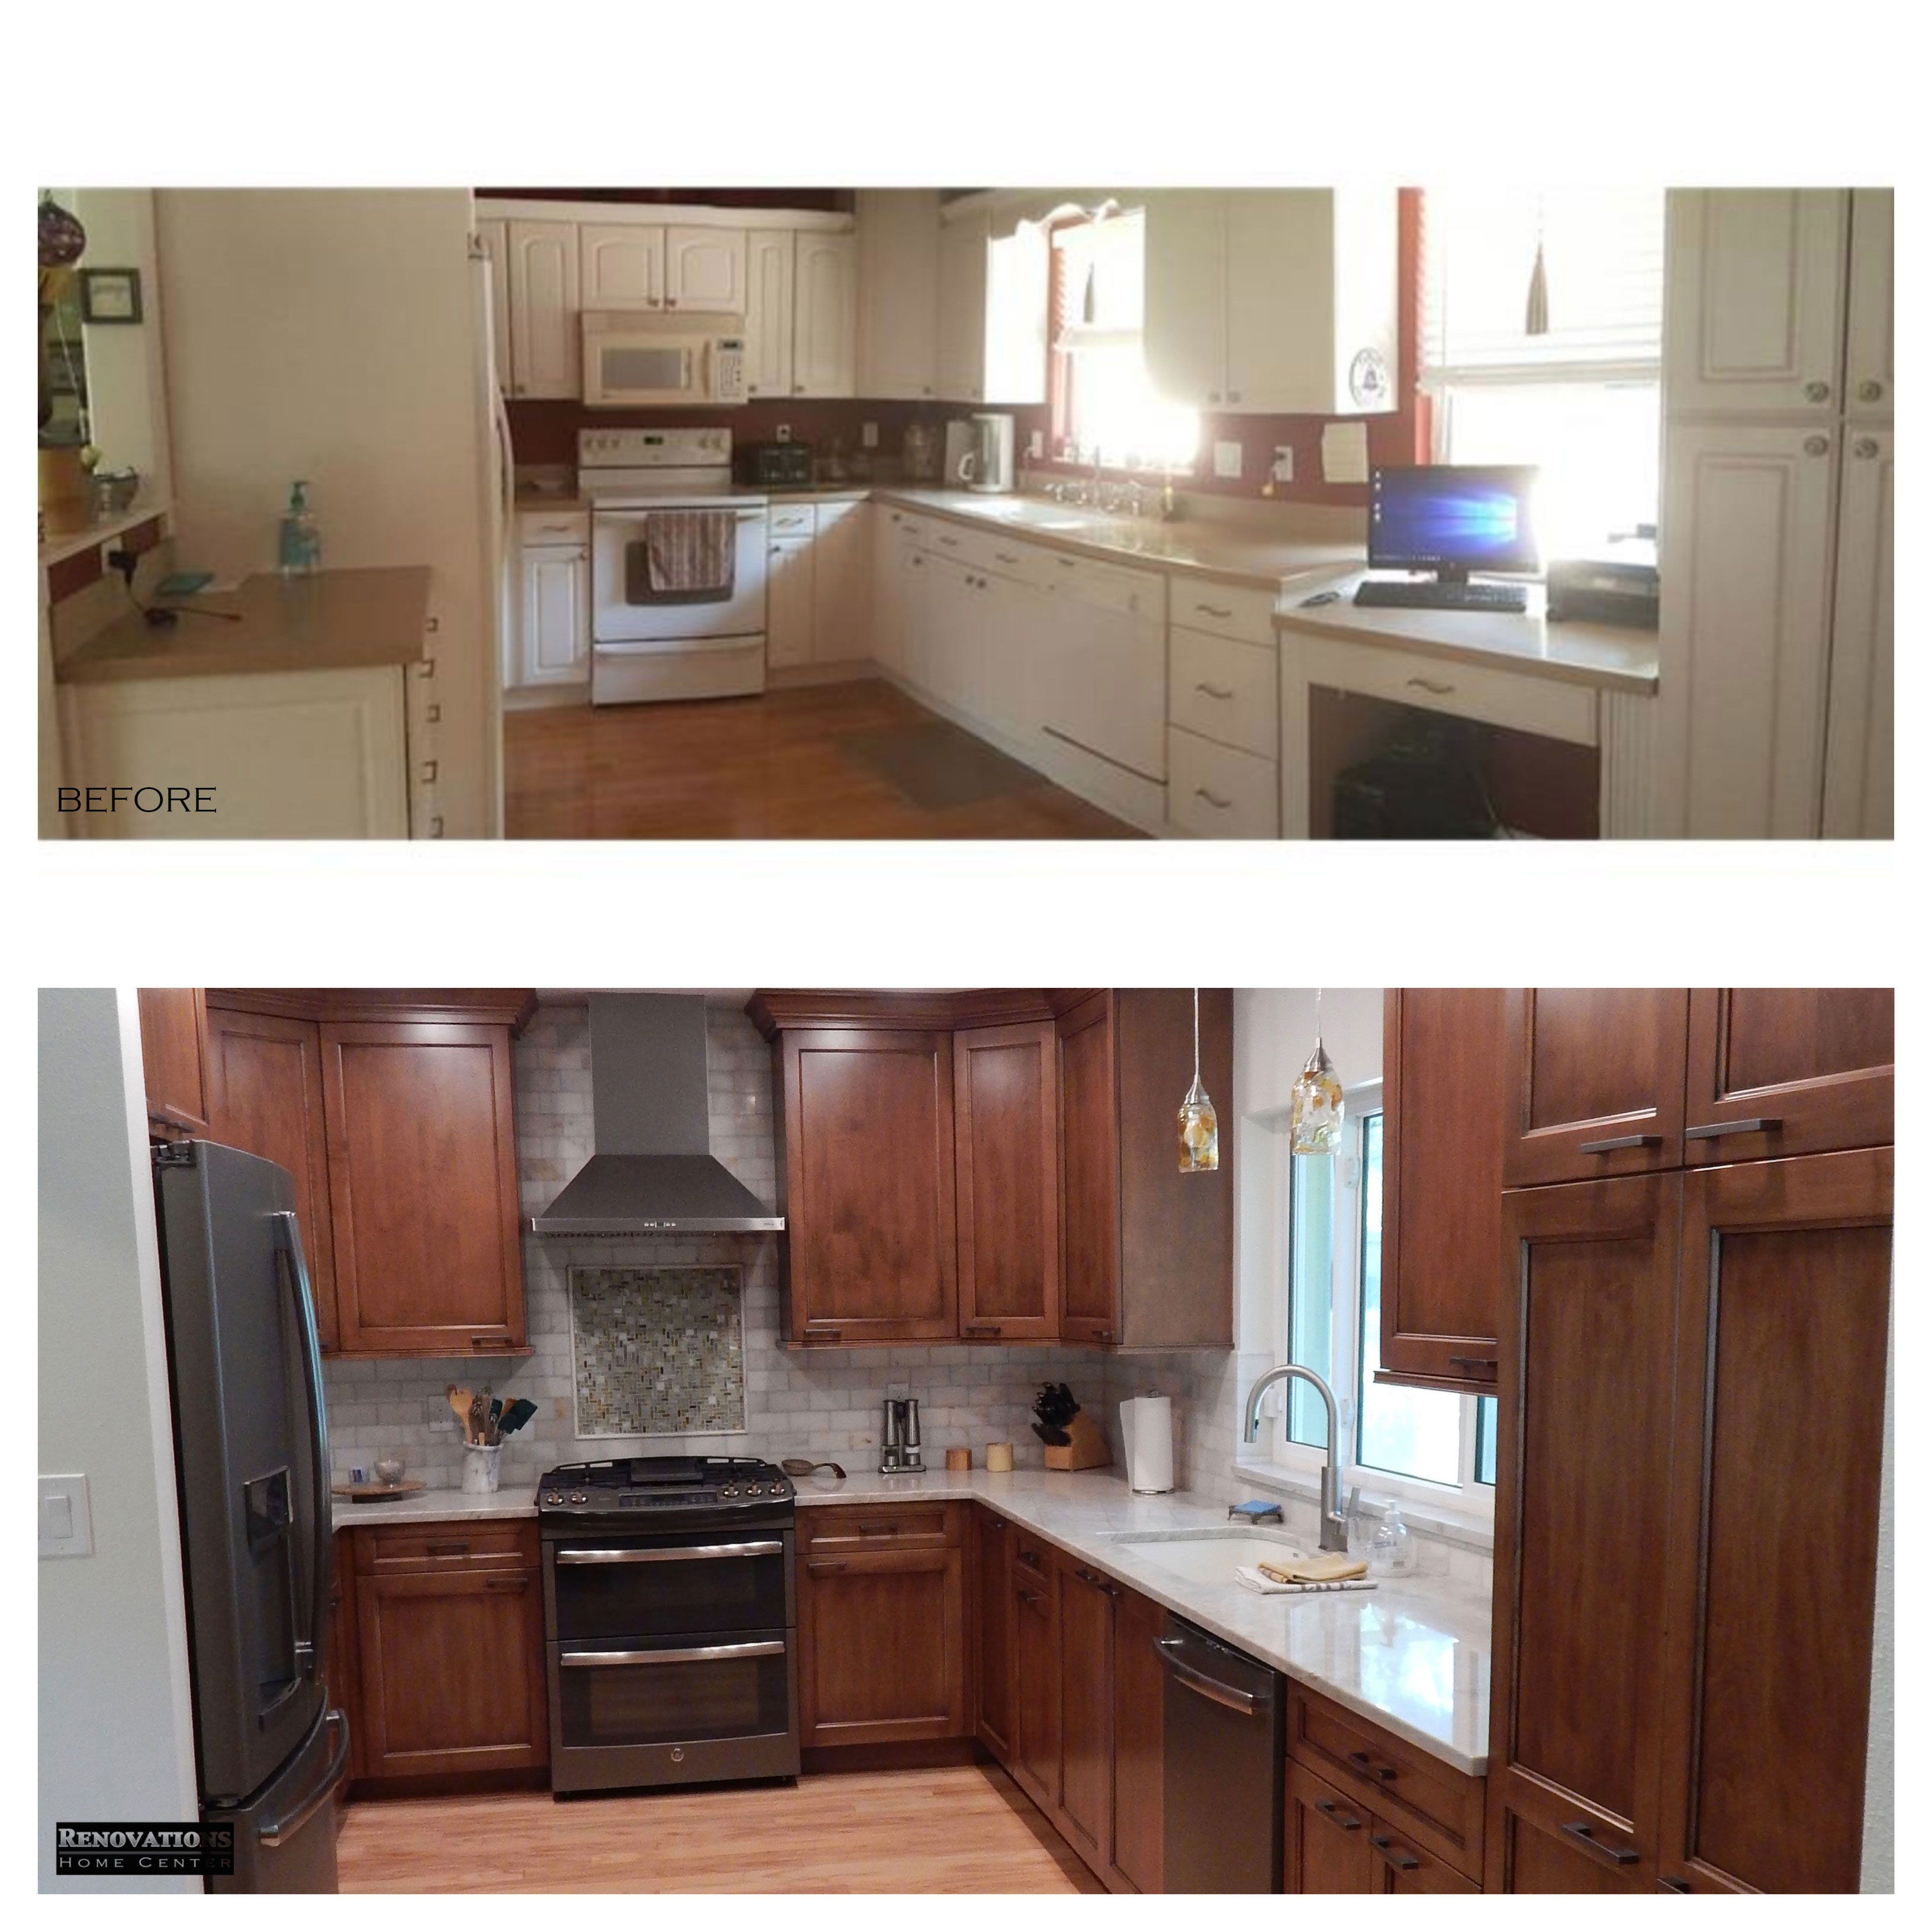 Kitchen And Bathroom Remodeling Contractors: On This Project Renovations Home Center Teamed Up With